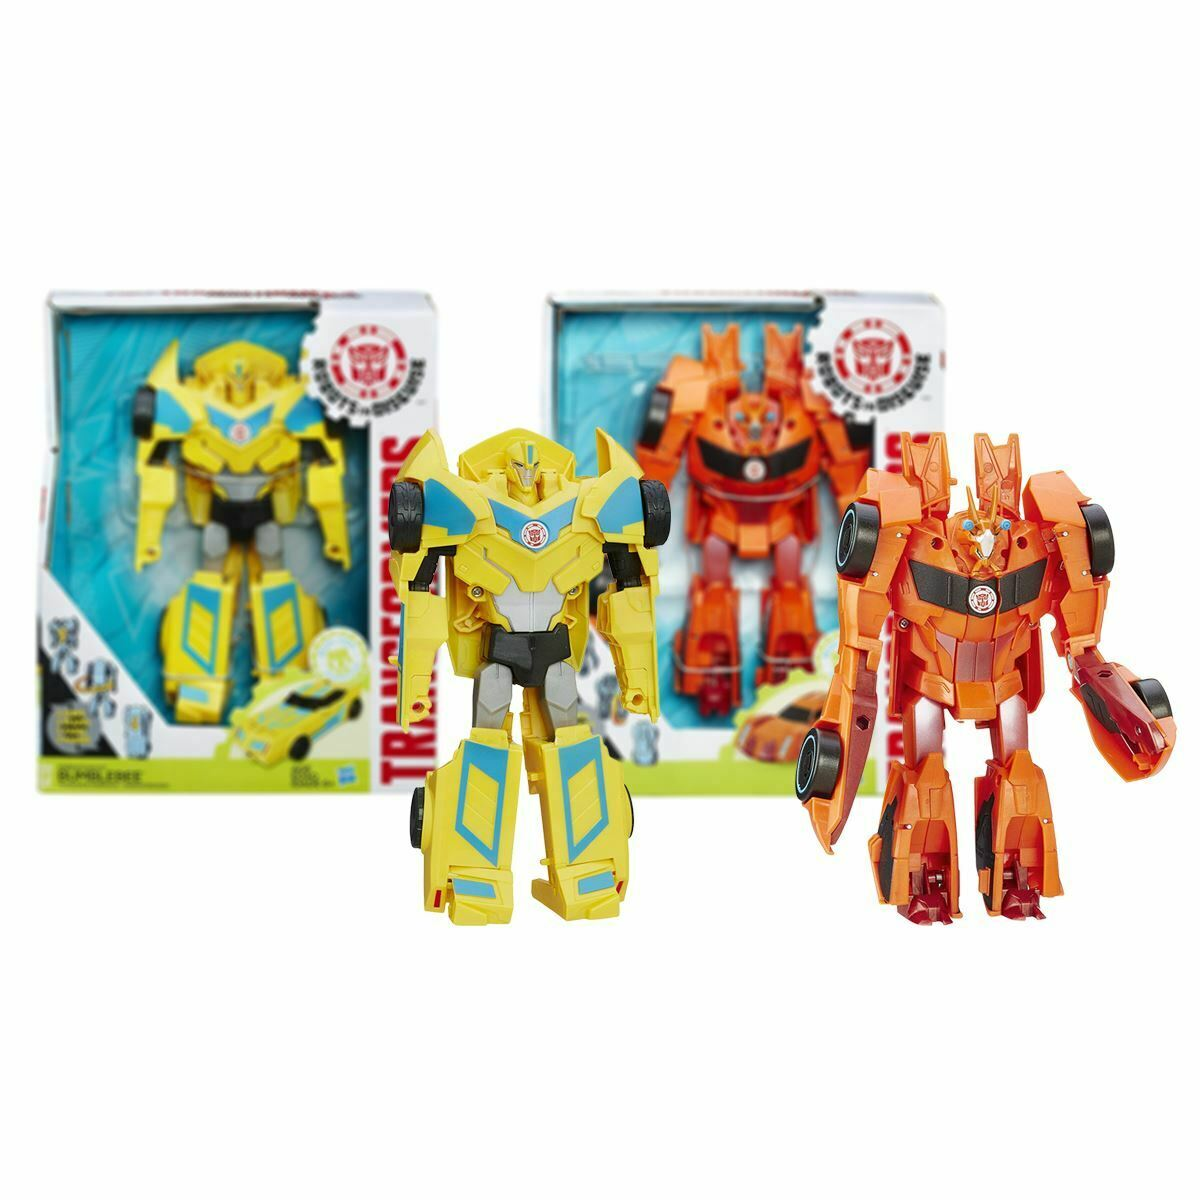 New Transformers Robots In Disguise 3-Step Bumblebee Or Bisk Figure Official